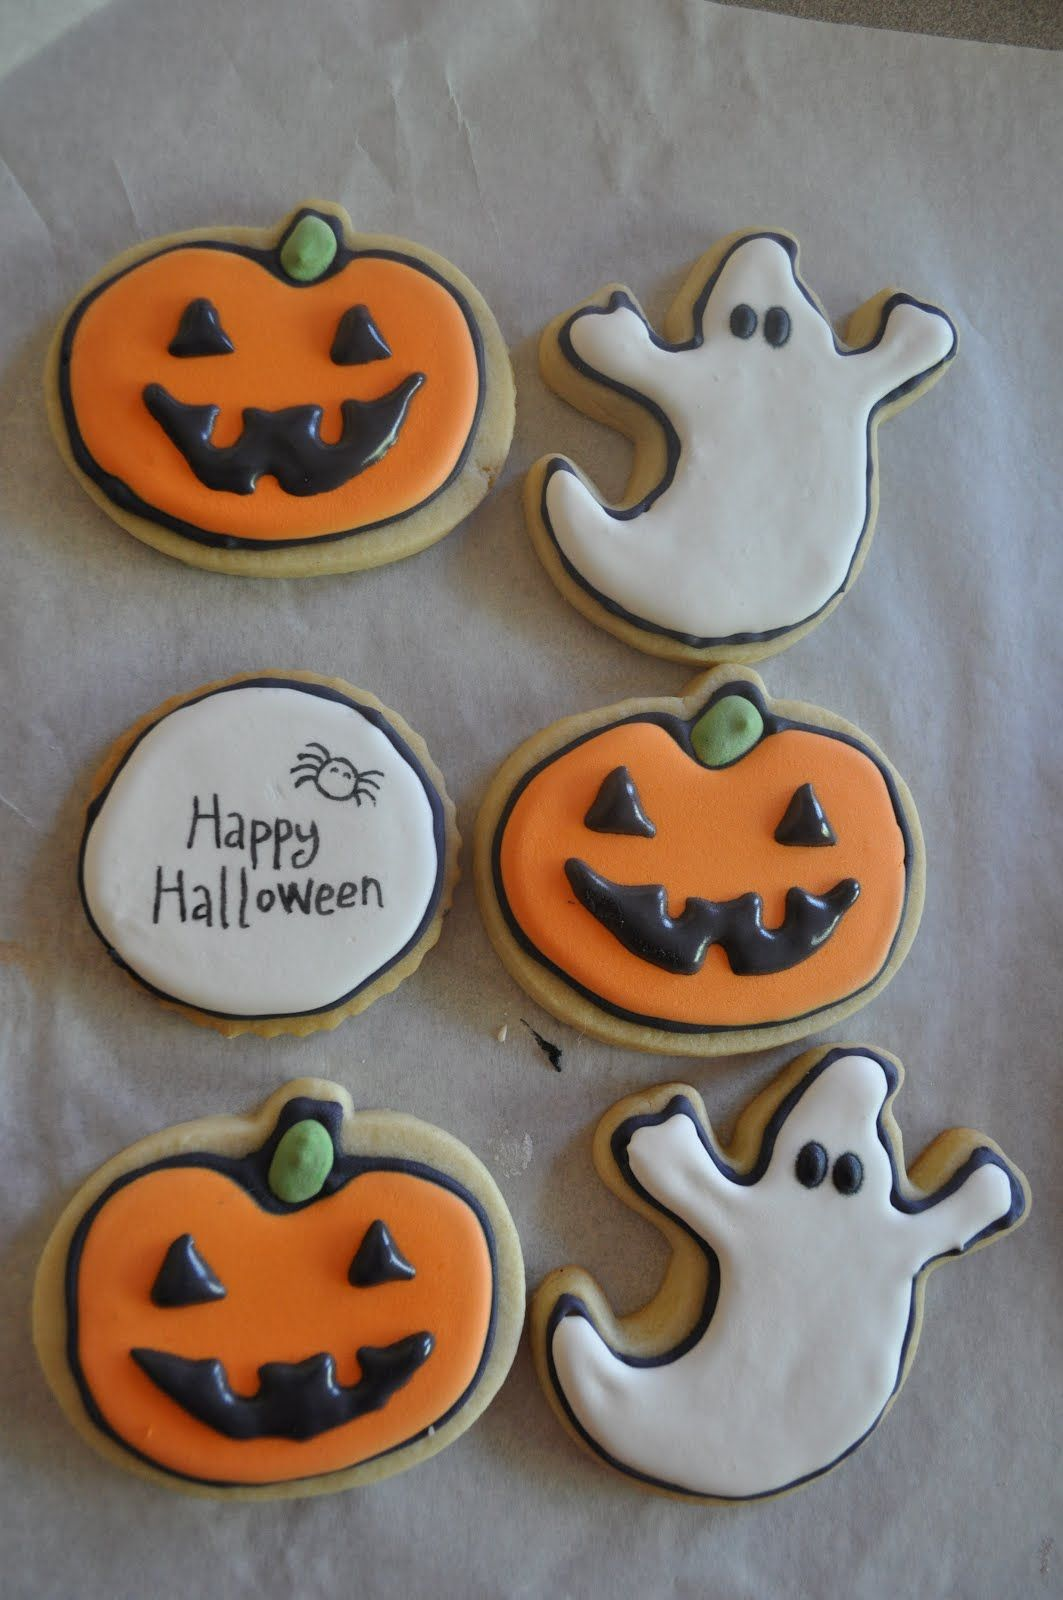 Classic cookies Boo-tiful Halloween Treats Pinterest Cookies - Halloween Decorated Cookies